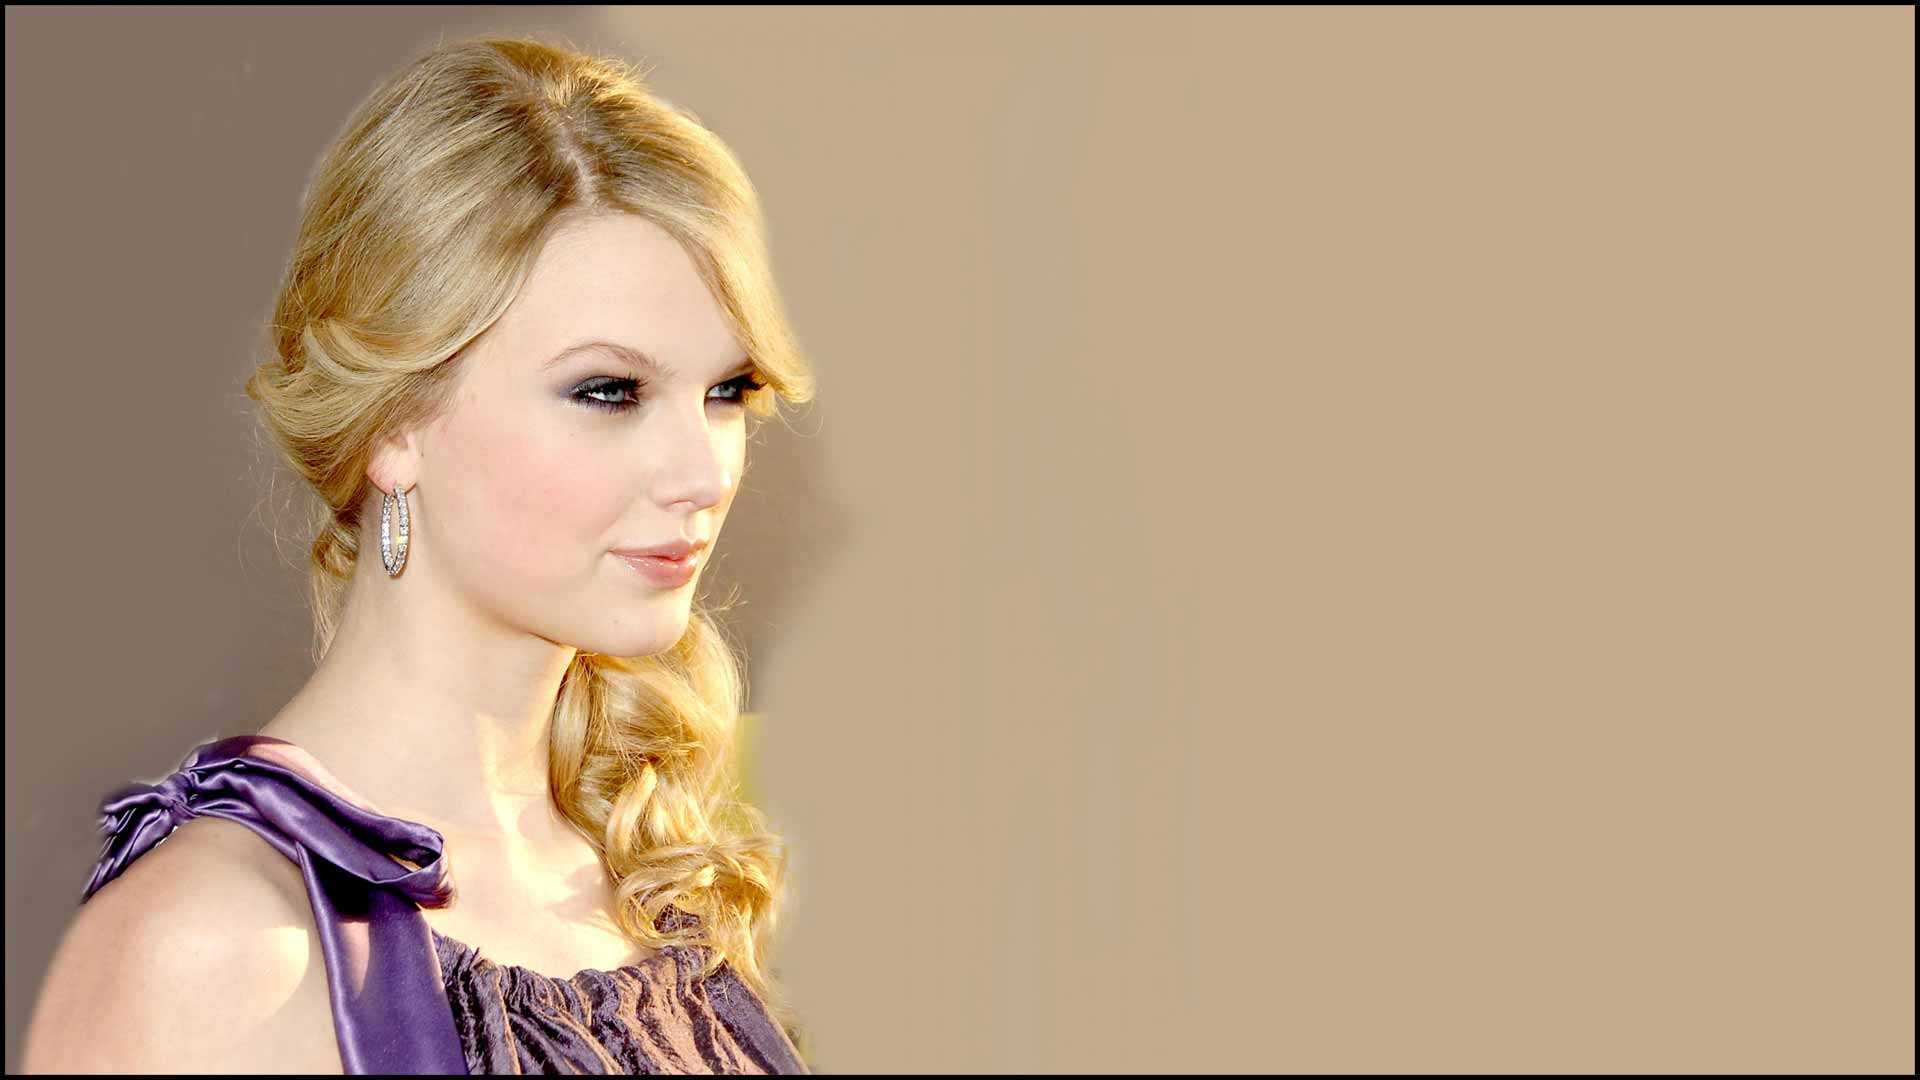 Black and white k taylor swift wallpapers free k wallpaper 1920x1080 voltagebd Gallery